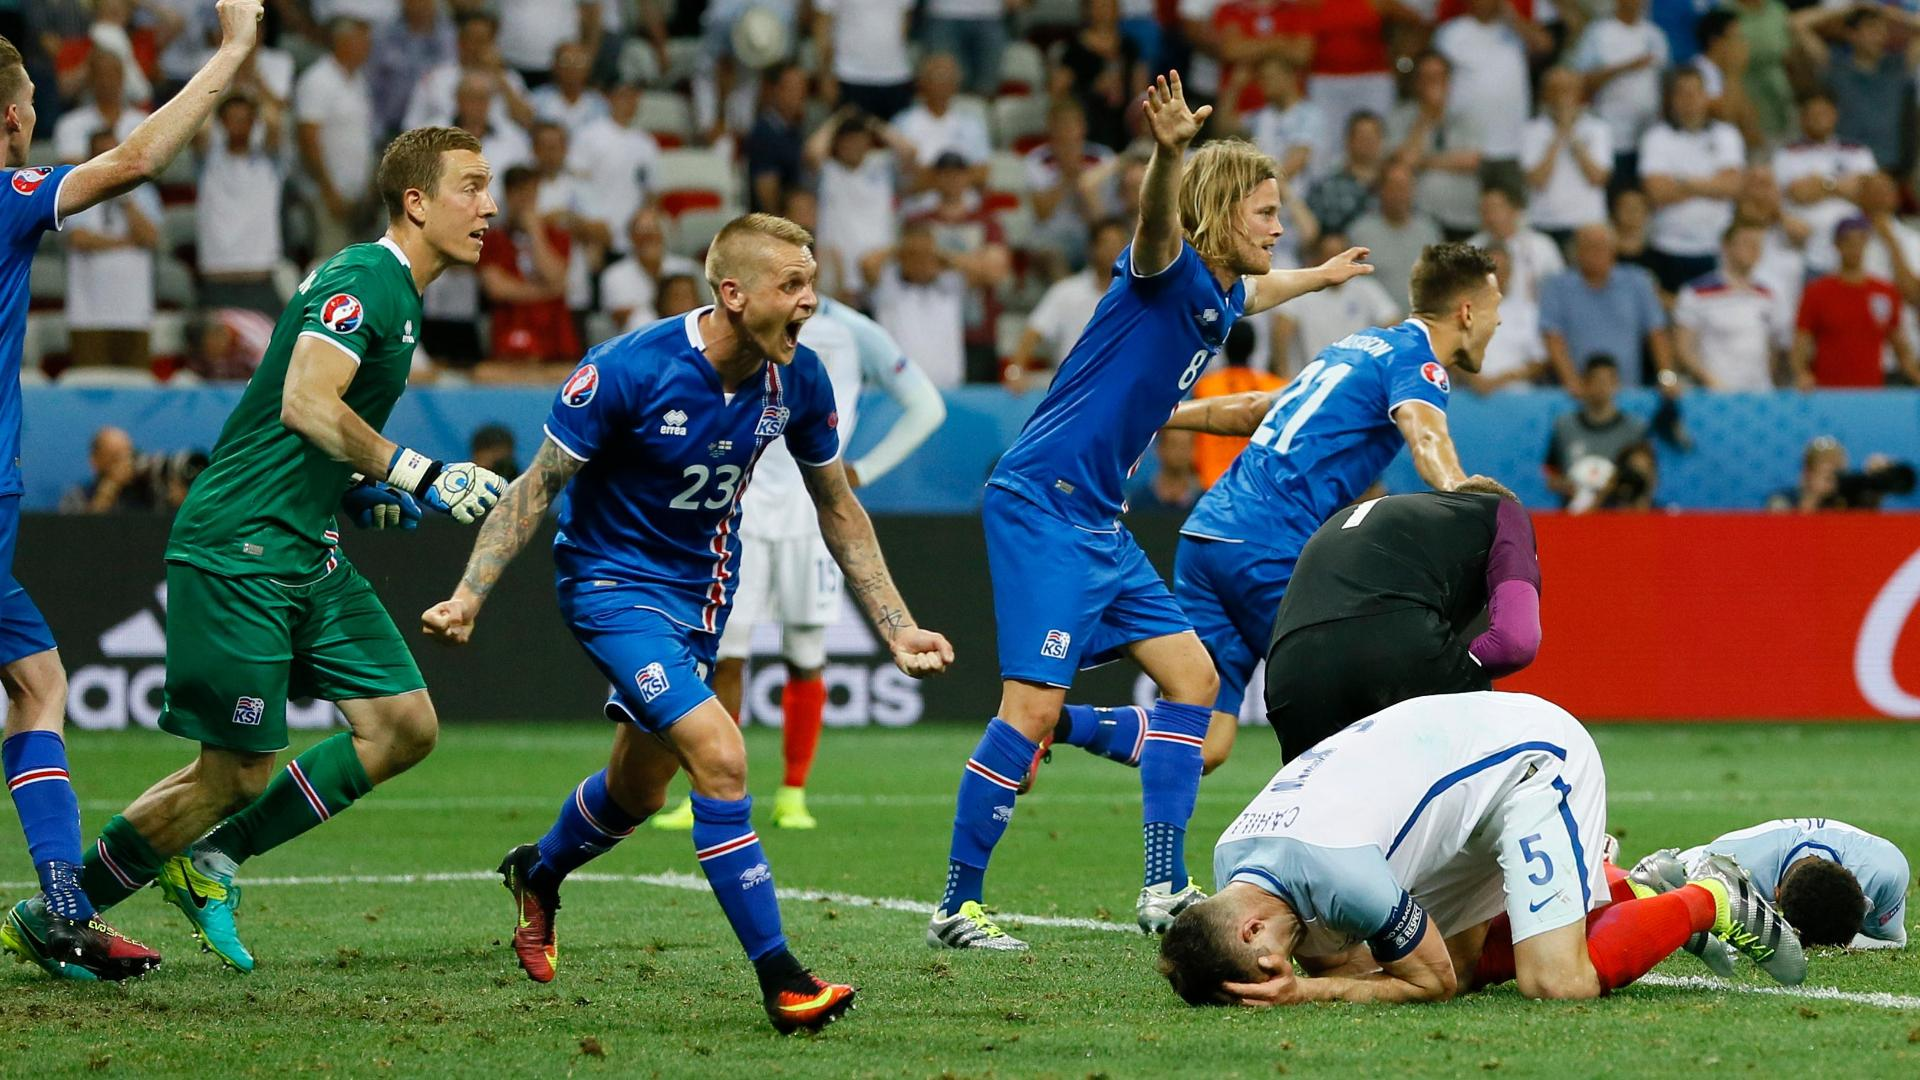 Icelandic commentator can't contain excitement in final seconds